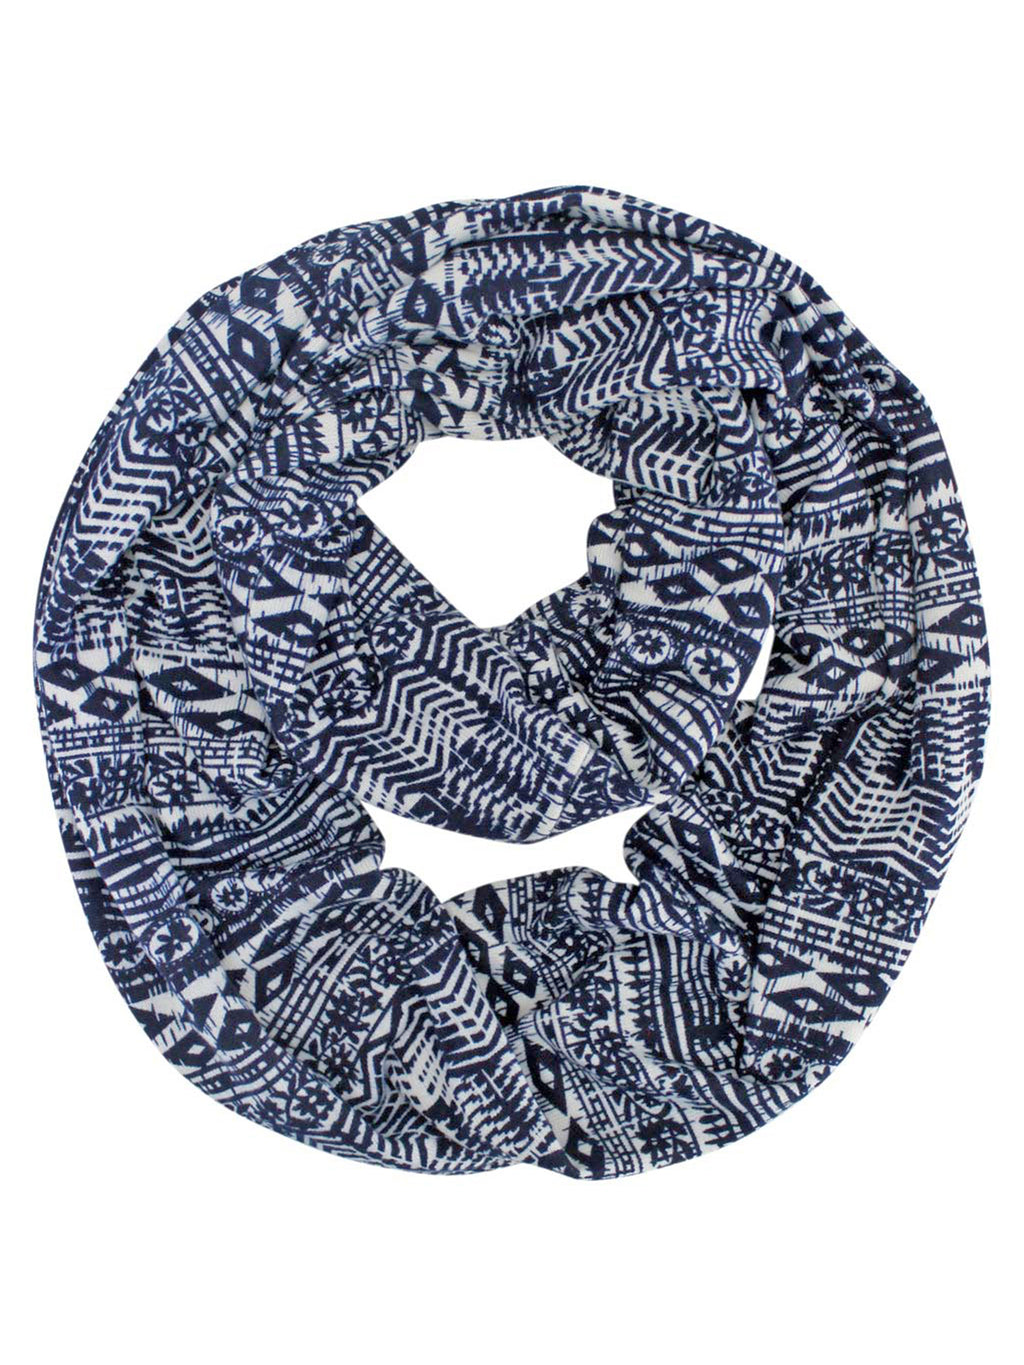 Navy & White Native Aztec Print Lightweight Circle Infinity Scarf